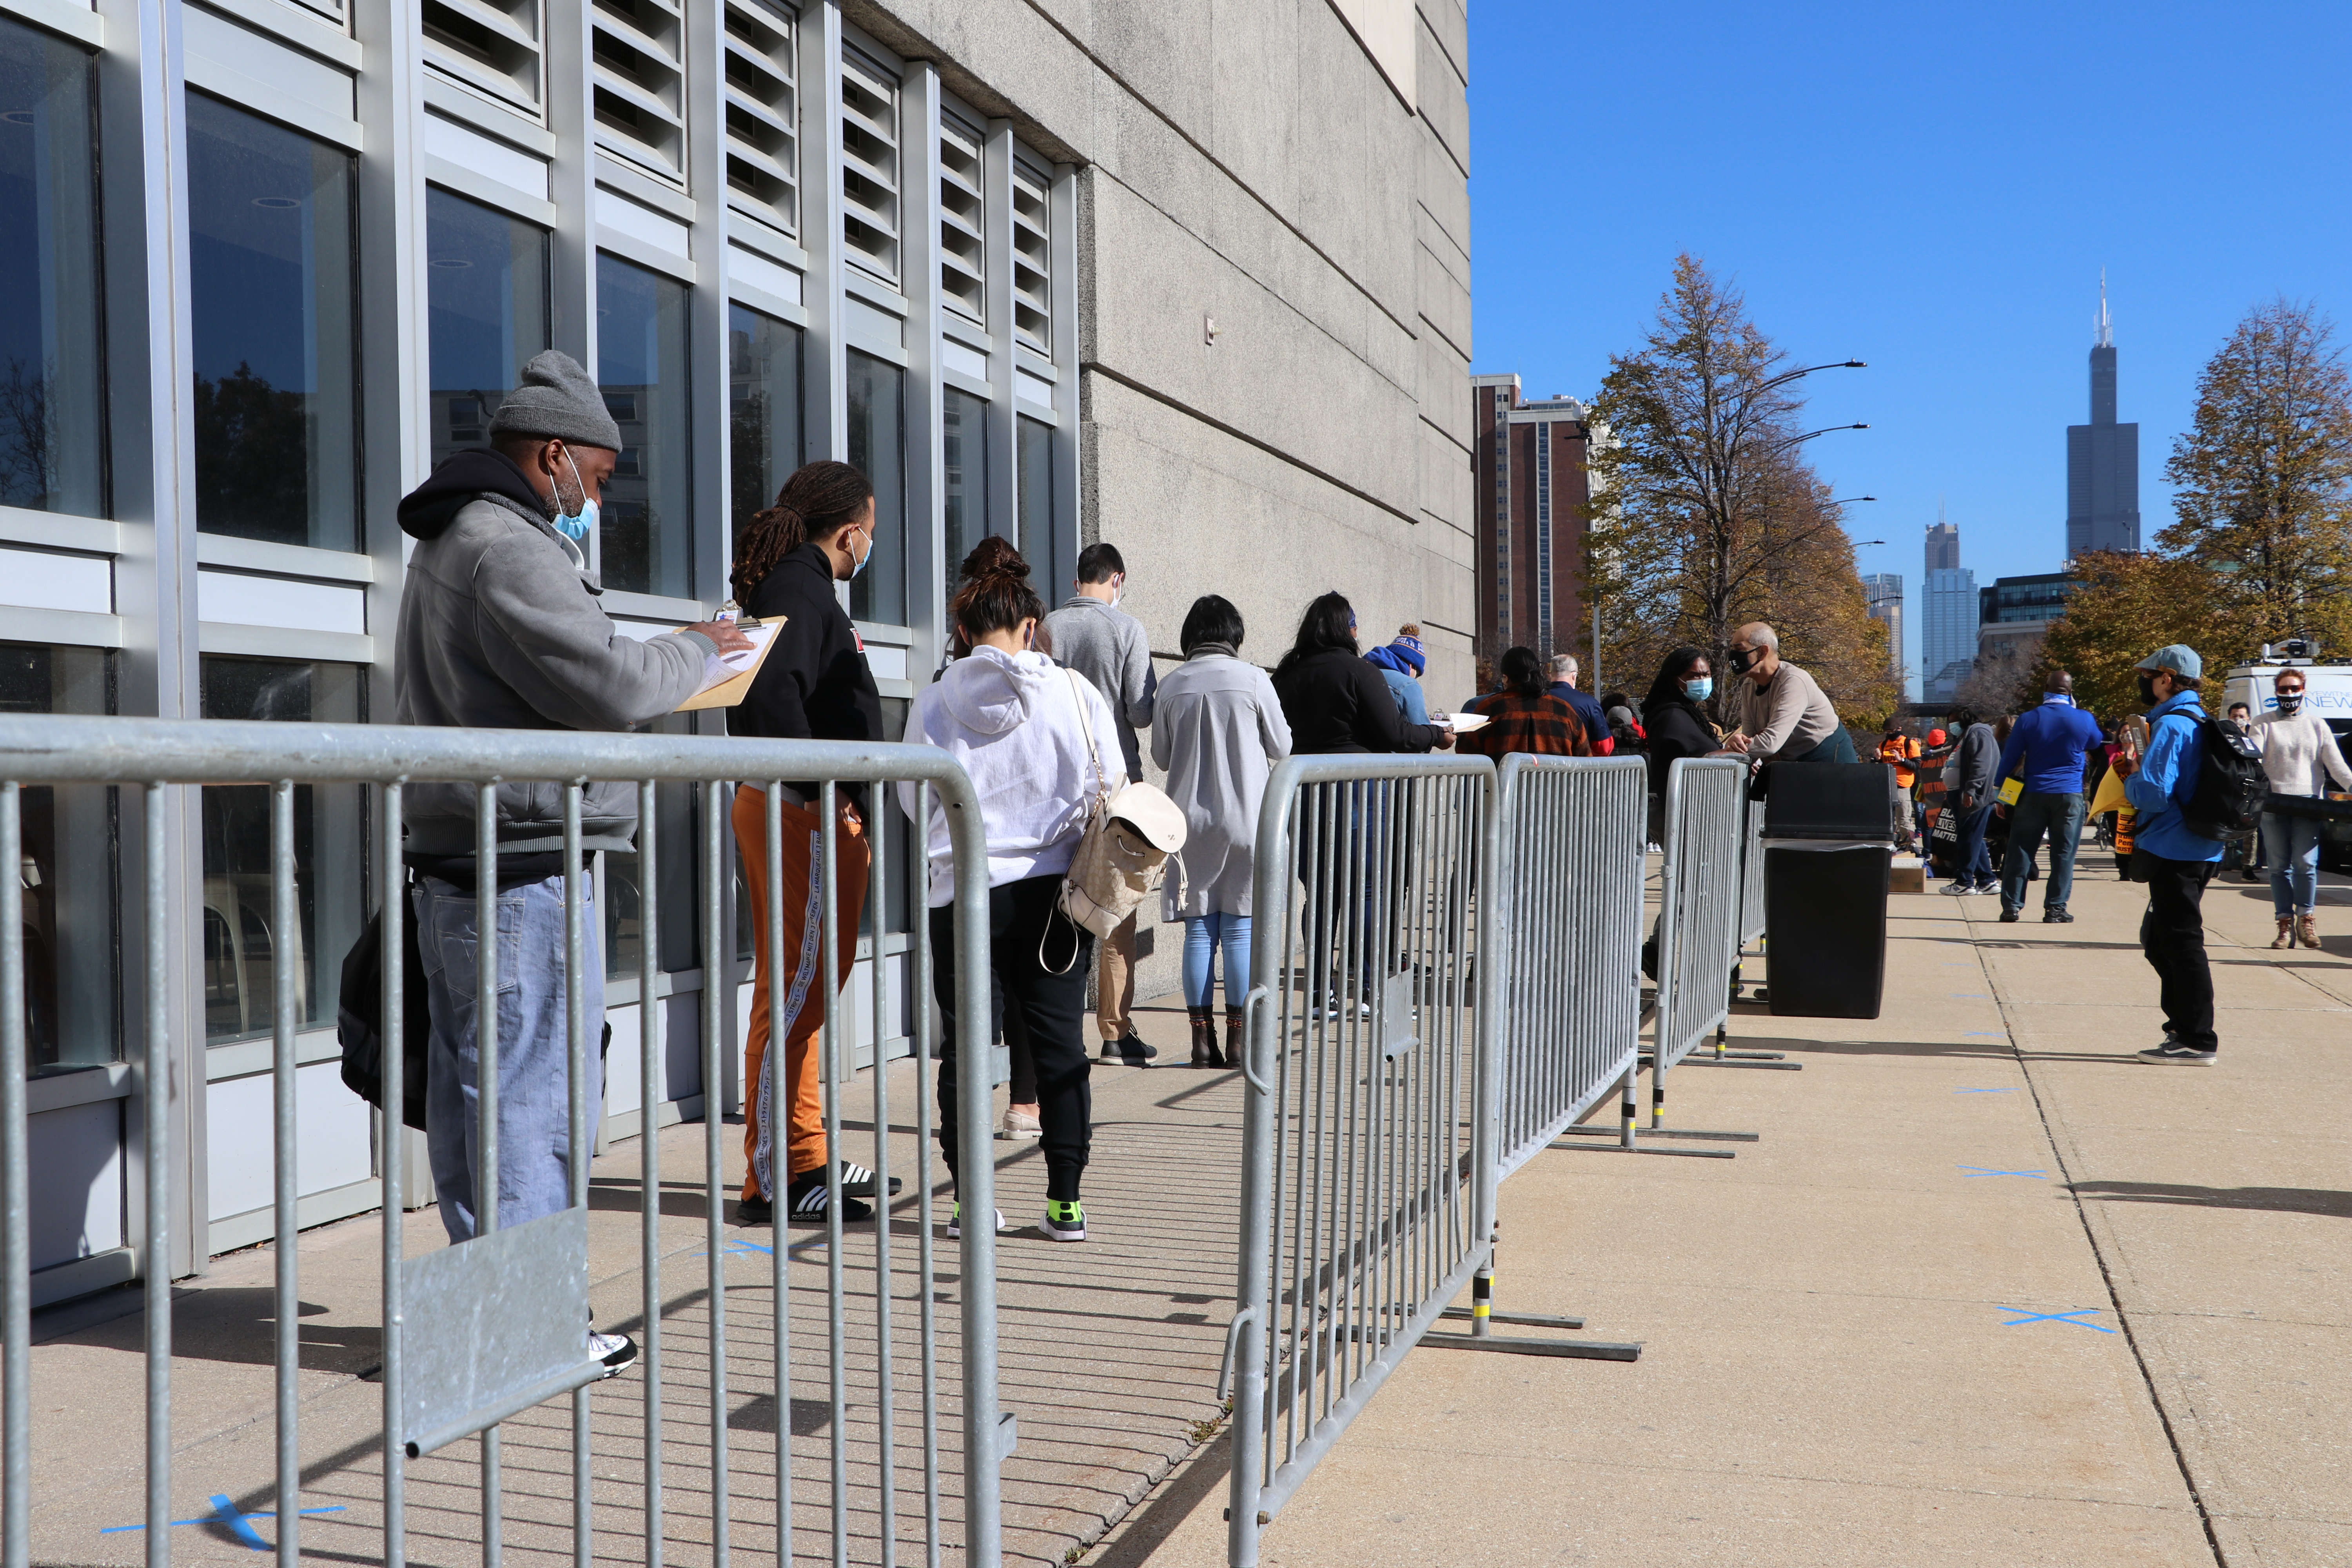 A line outside of the United Center arena in the West Loop neighborhood